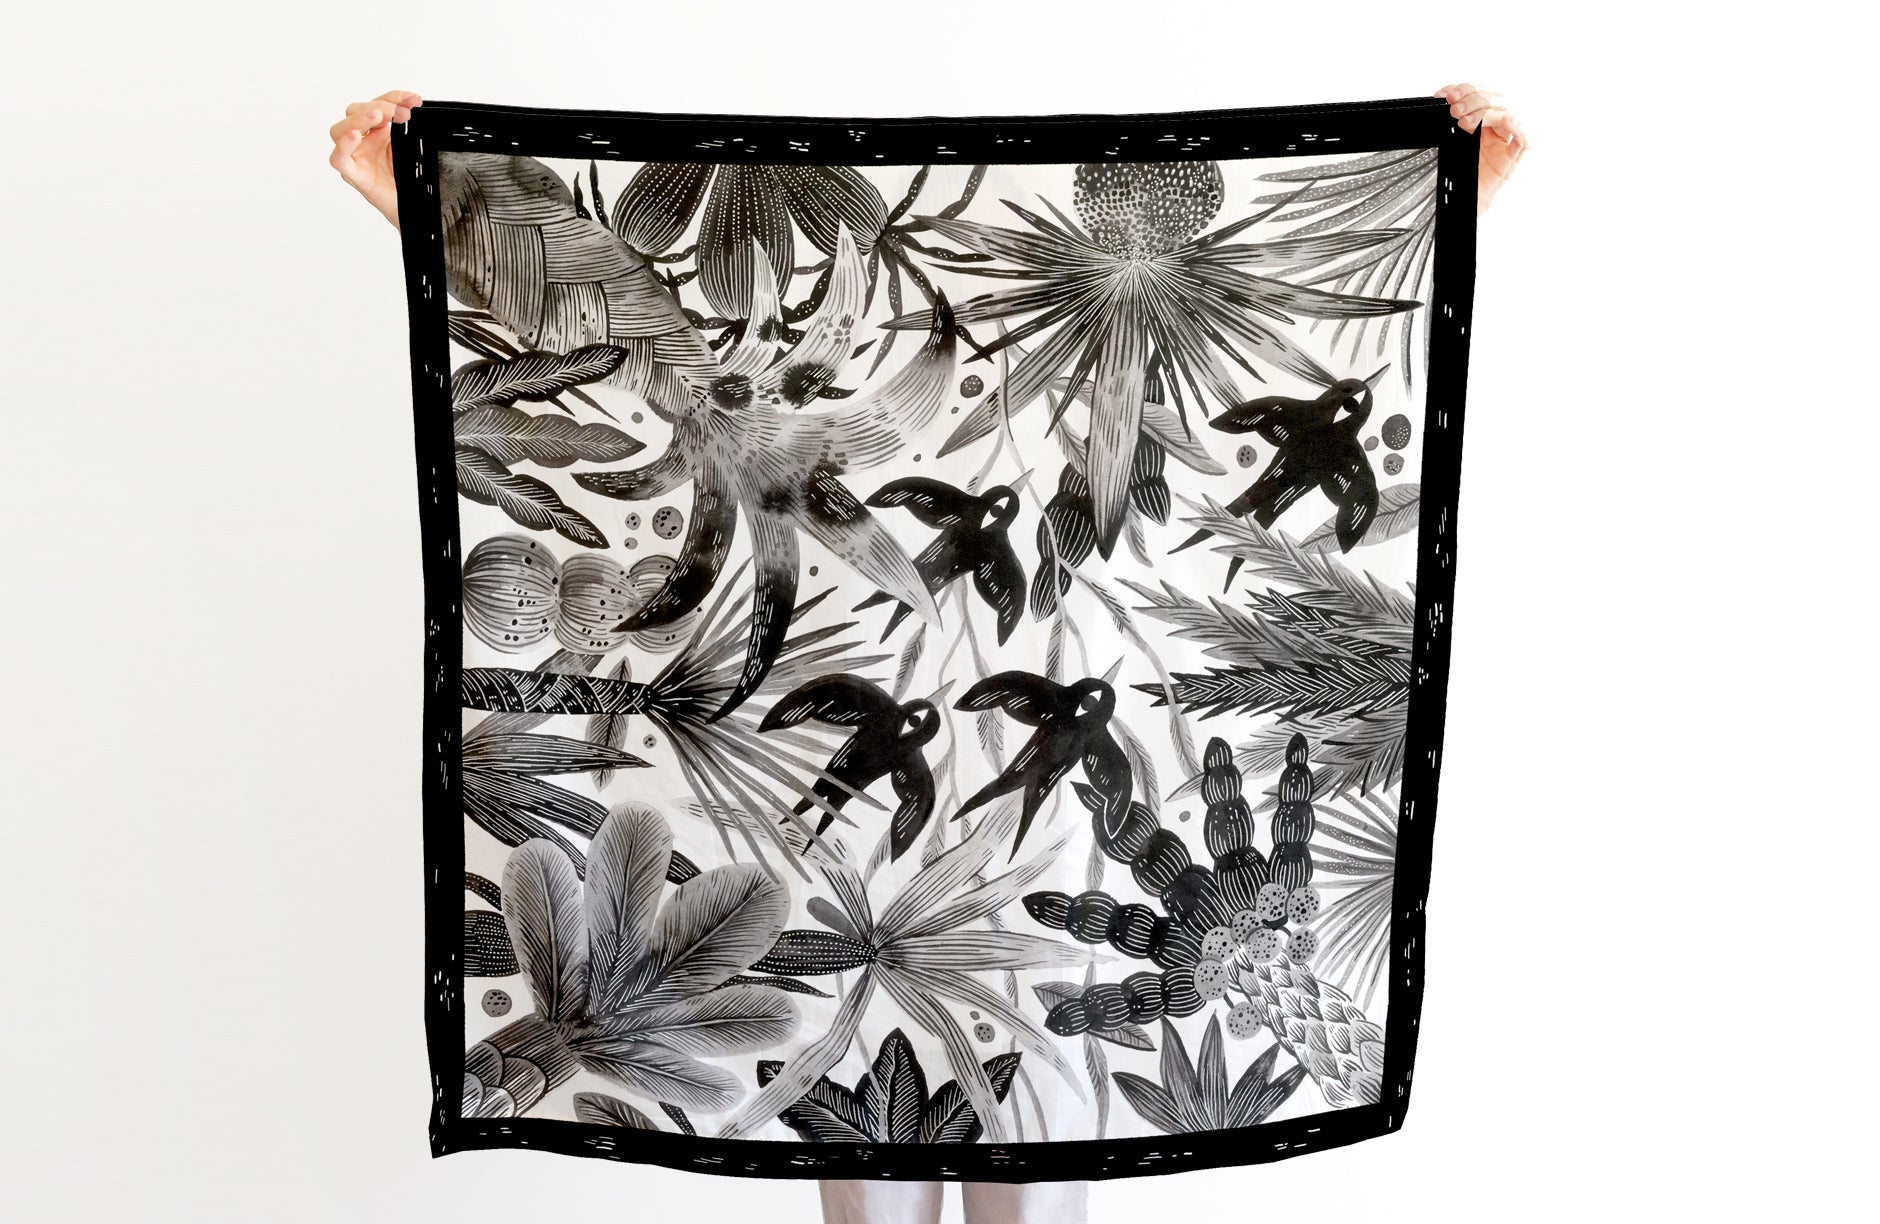 Birds Scarf - 88x88 cm, Cotton-Silk Blends